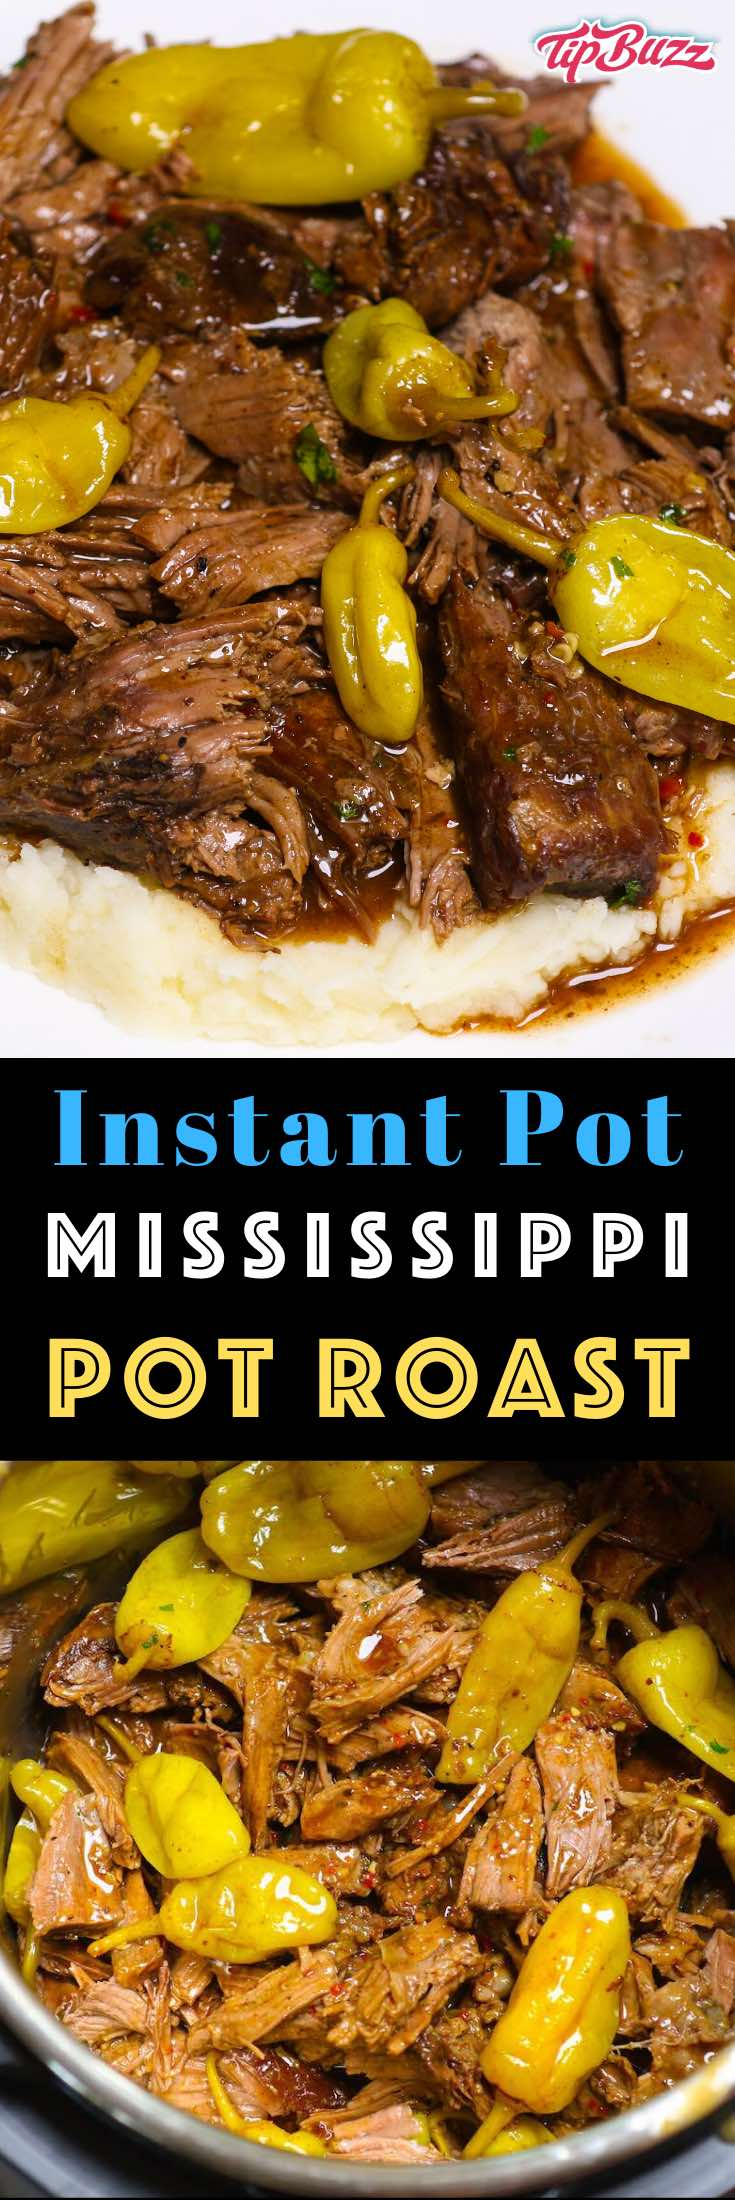 Instant Pot Mississippi Pot Roast is an easy and comforting dinner recipe that even picky eaters will devour. The chuck roast is fall-apart tender with a flavorful gravy. It's made right in your pressure cooker and is so much faster than any other method!